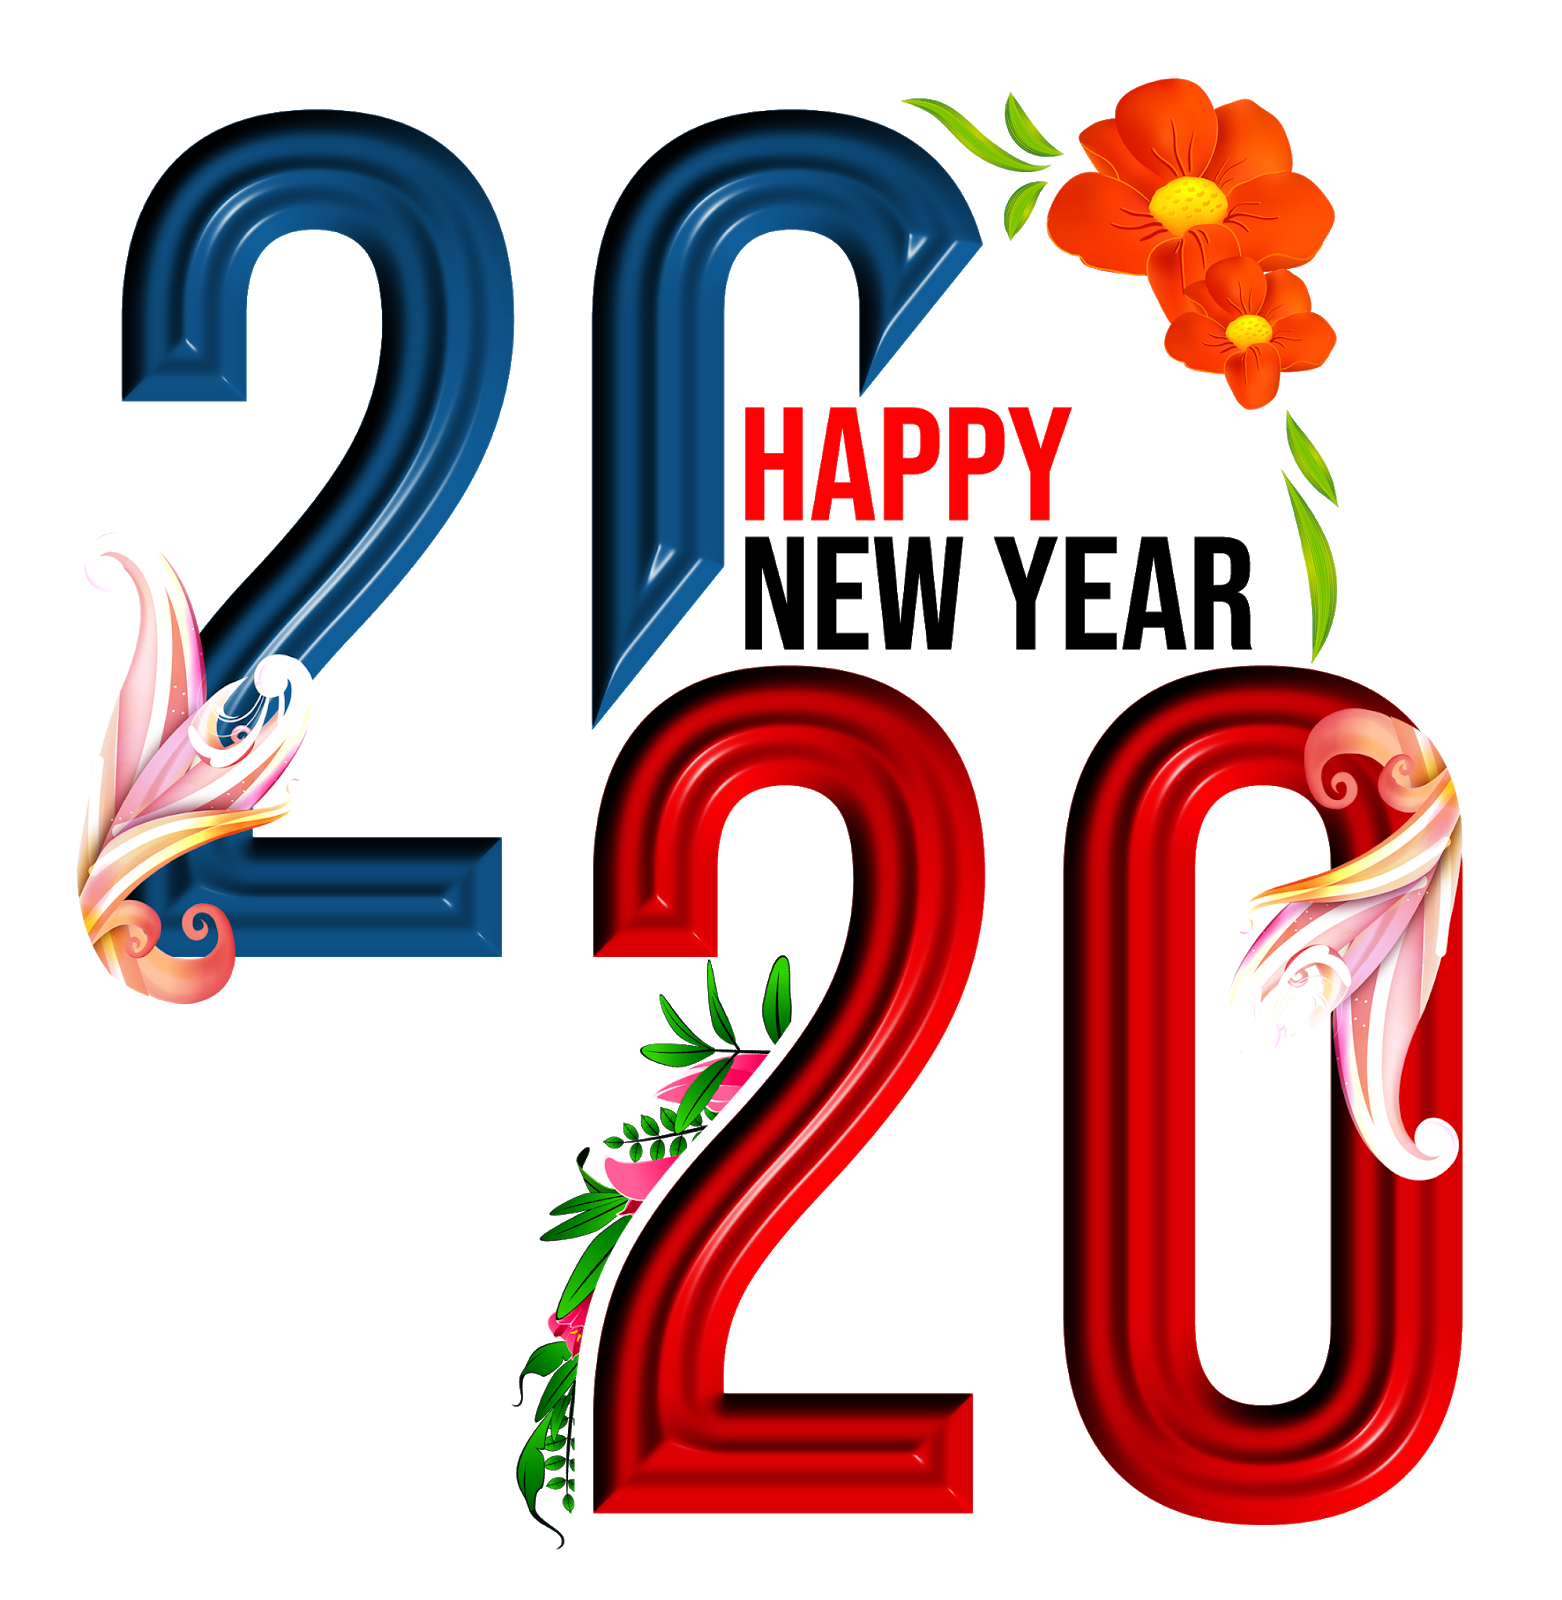 Happy New Year 2020 Png Transparent Images Naveengfx